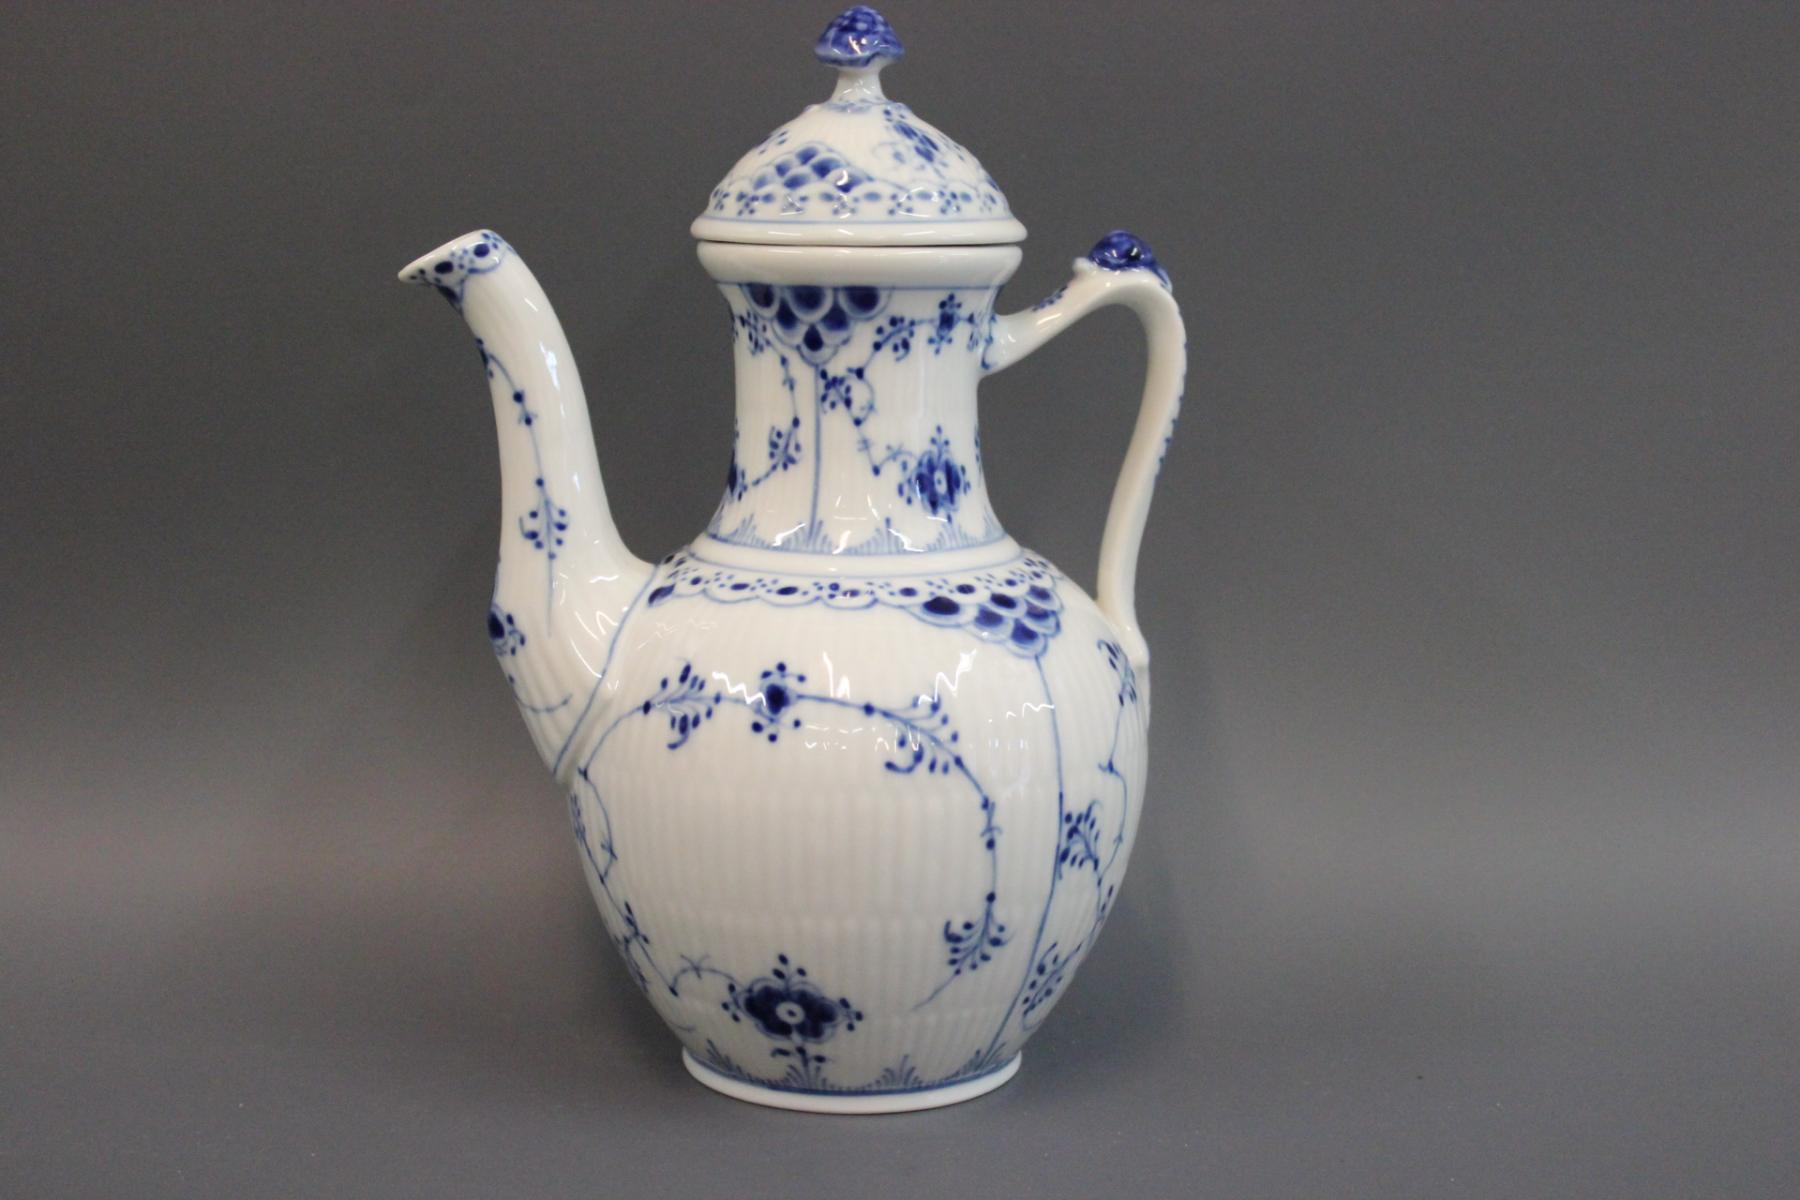 No. 518 Porcelain Coffee Pot by Arnold King for Royal Copenhagen ...